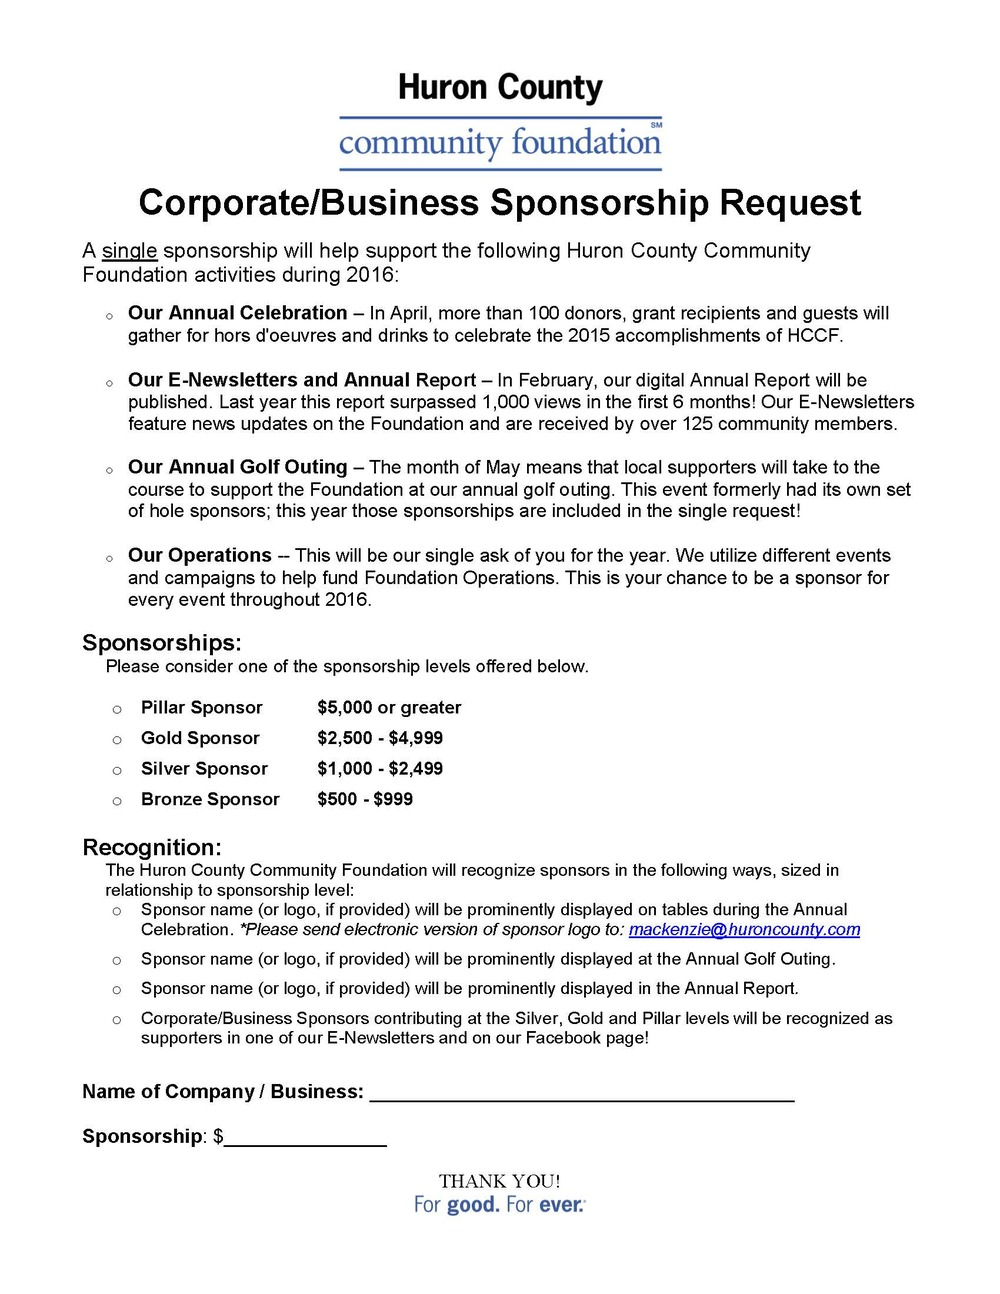 If you or your business is interested in becoming a 2016 sponsor, please print the document via the link below and send it to HCCF.